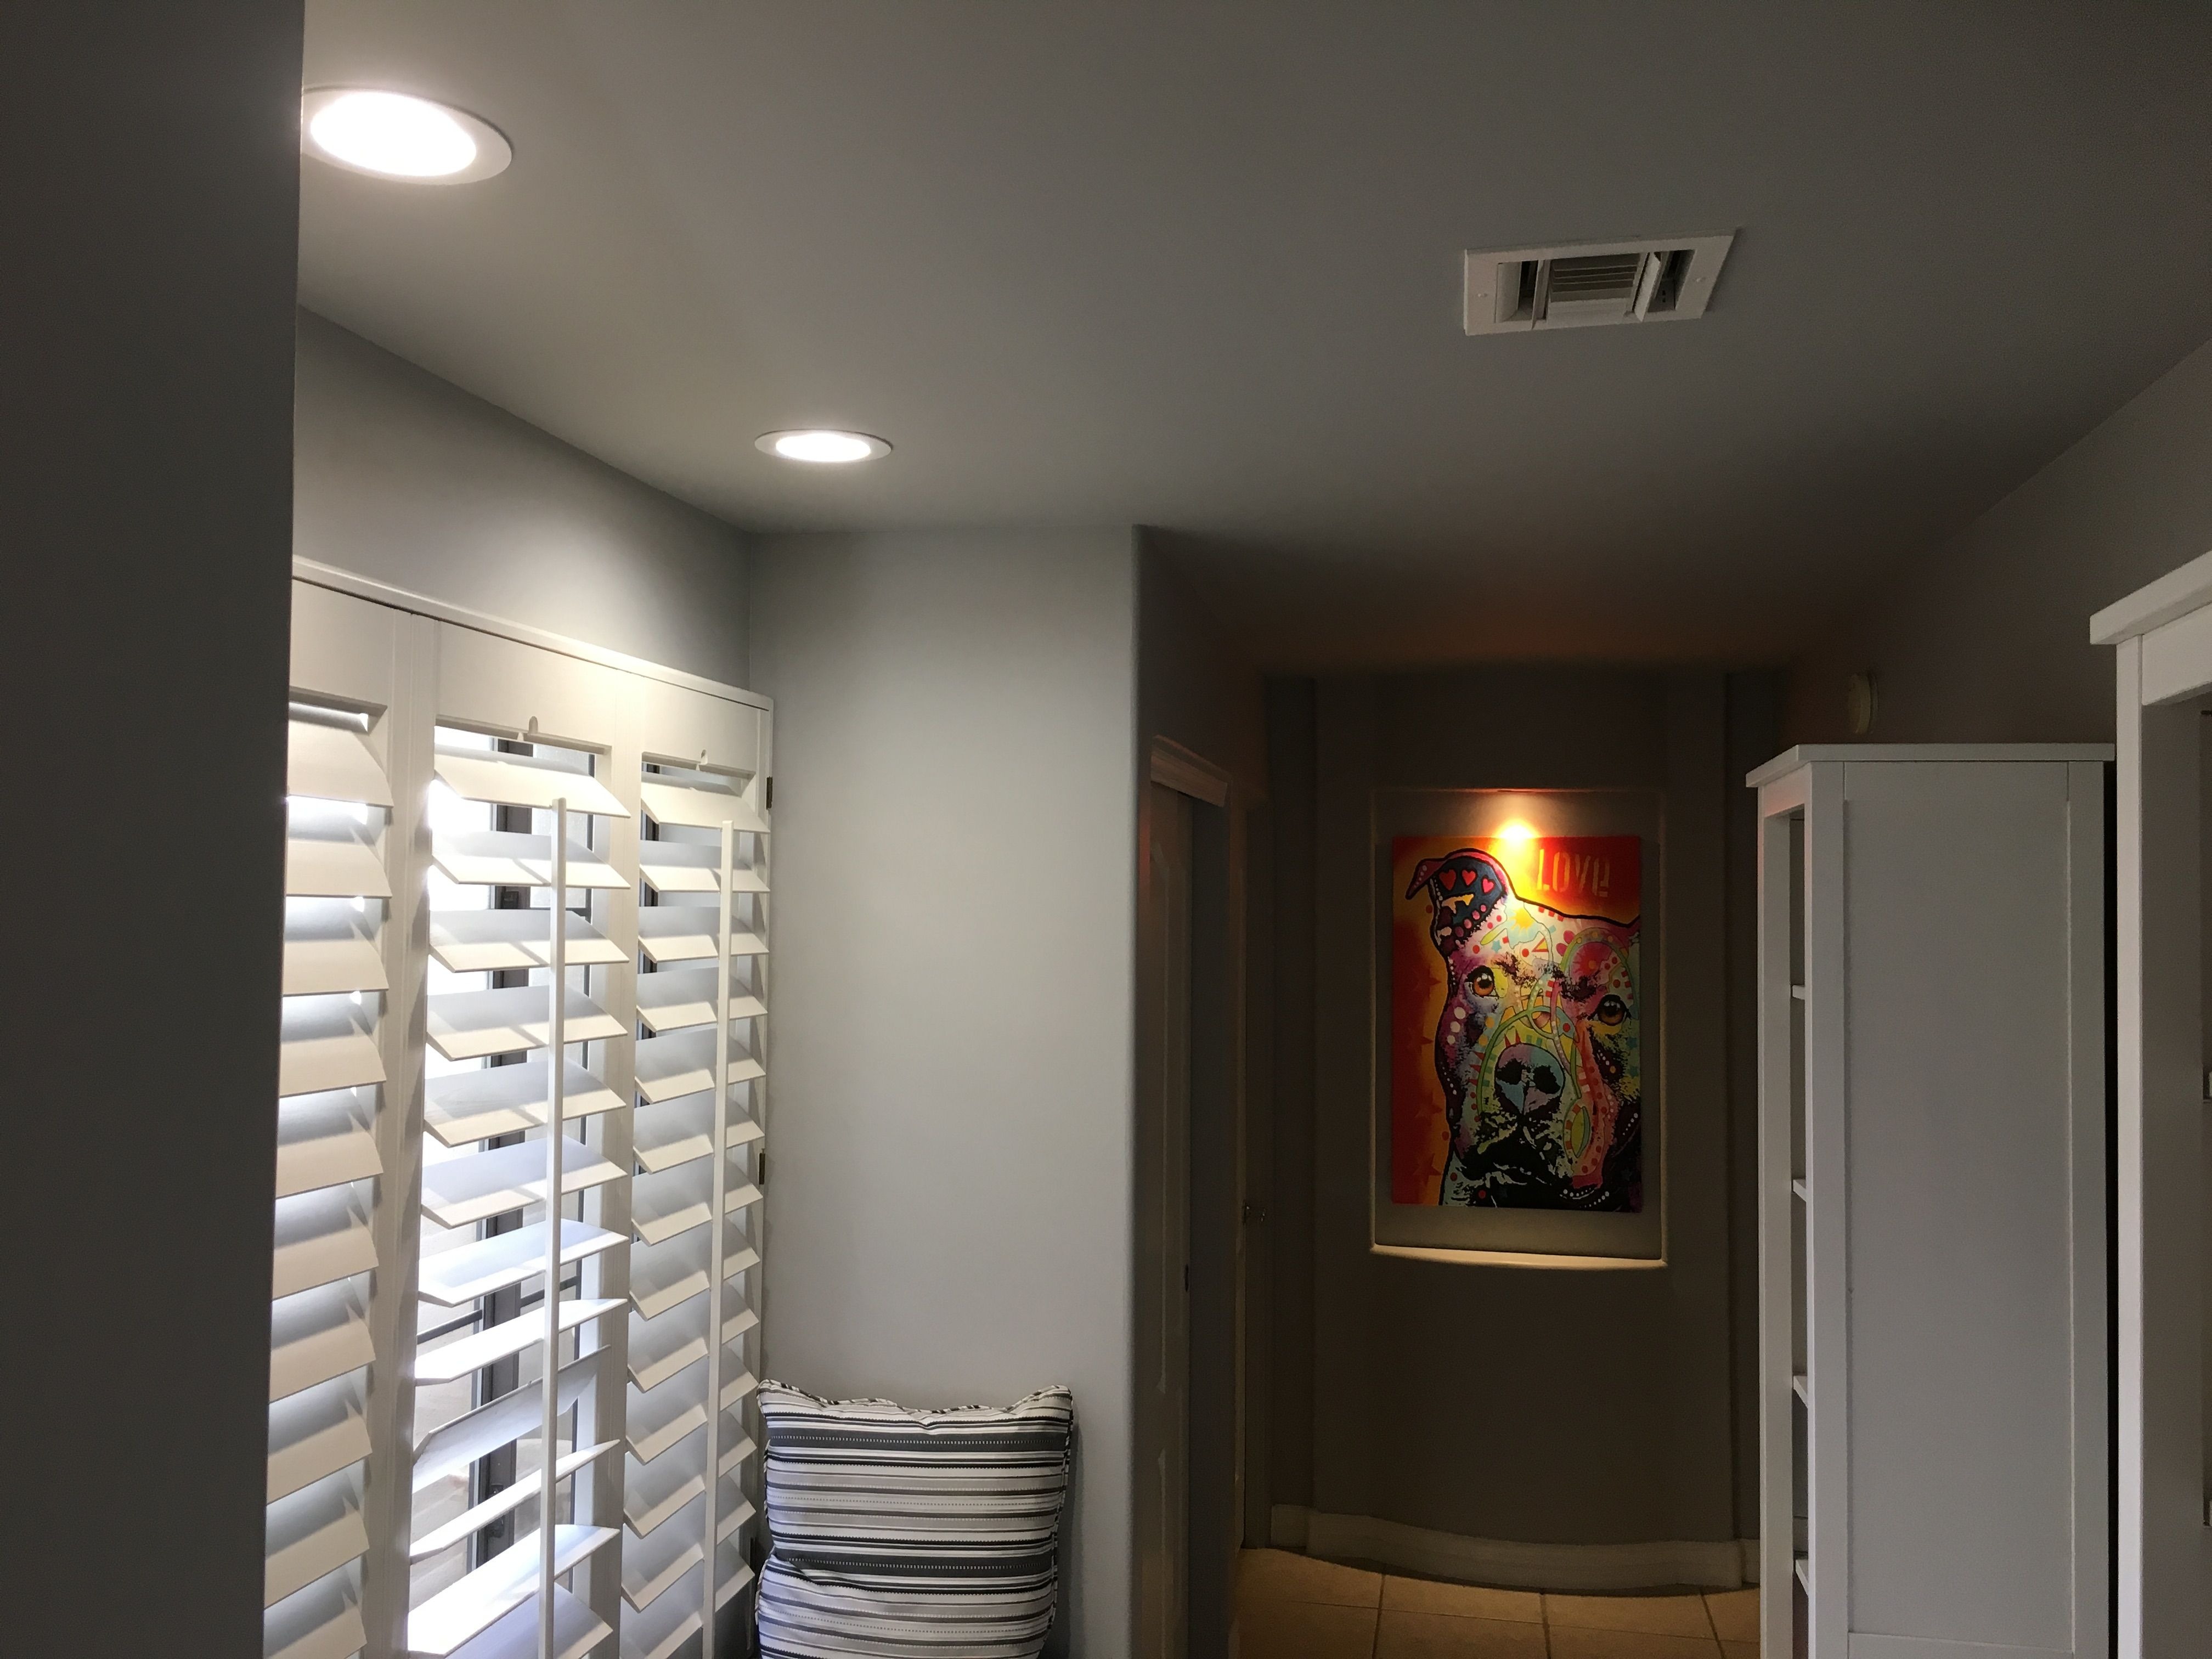 Hallway Installed LED recessed lights install 2 directional LED recessed lights for paintings. & Hallway Installed 2x 6-inch LED recessed lights install 2 3-inch ... azcodes.com